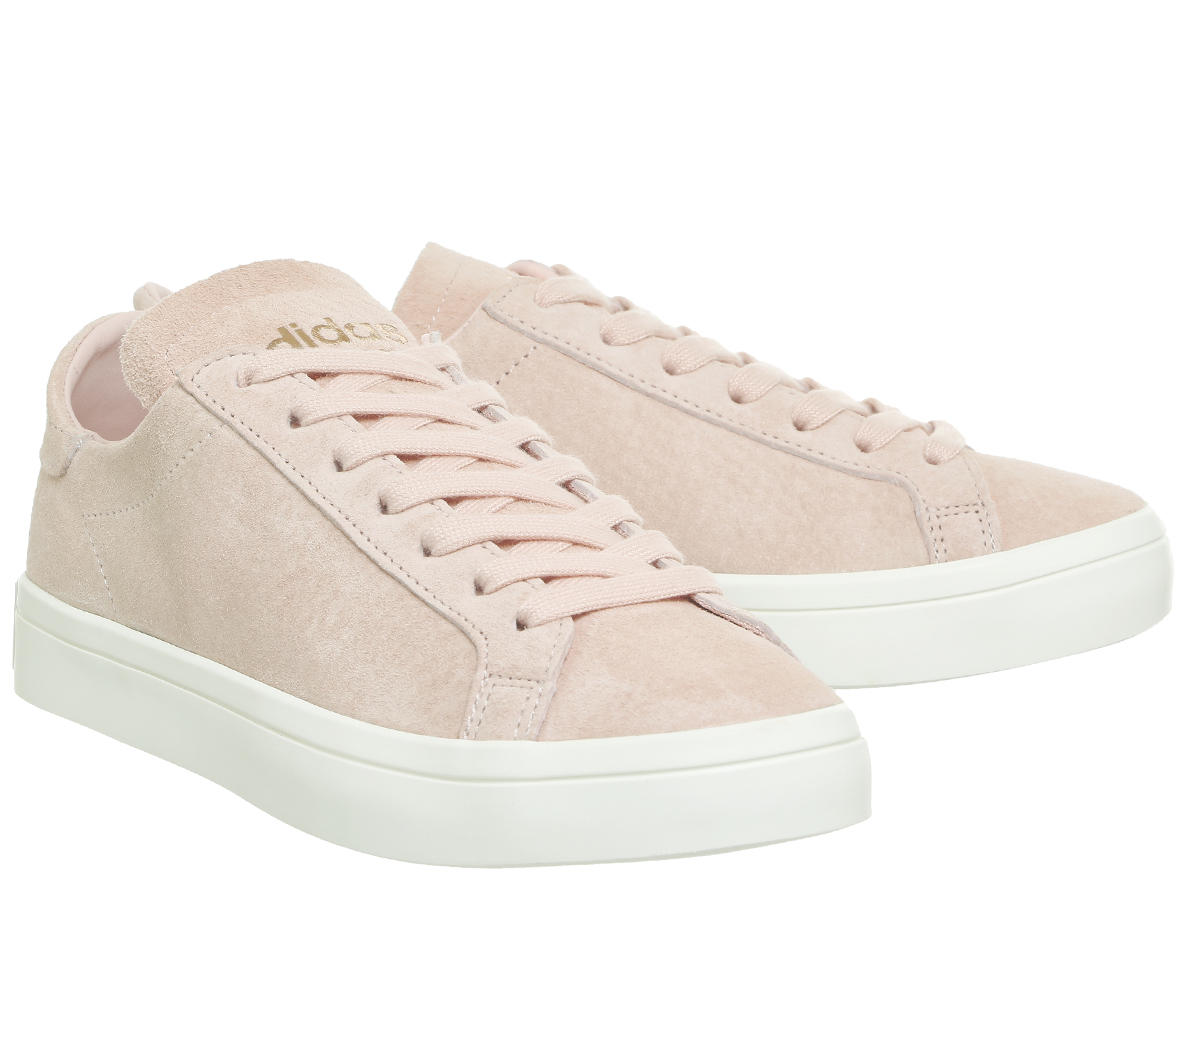 87e697dd83d7 Sentinel Womens Adidas Court Vantage Trainers VAPOUR PINK OFF WHITE  Trainers Shoes